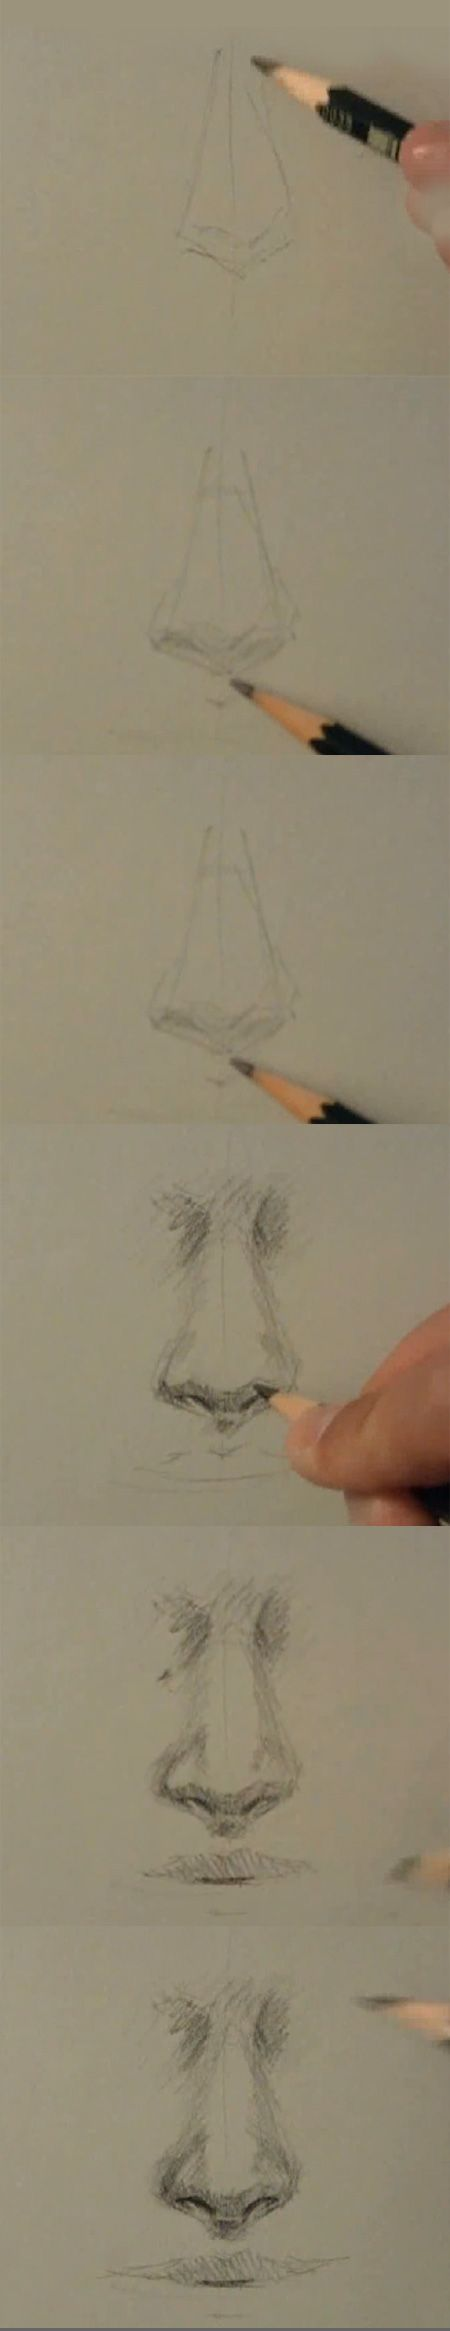 How to draw nose  always useful, since I can't draw noses to save my life